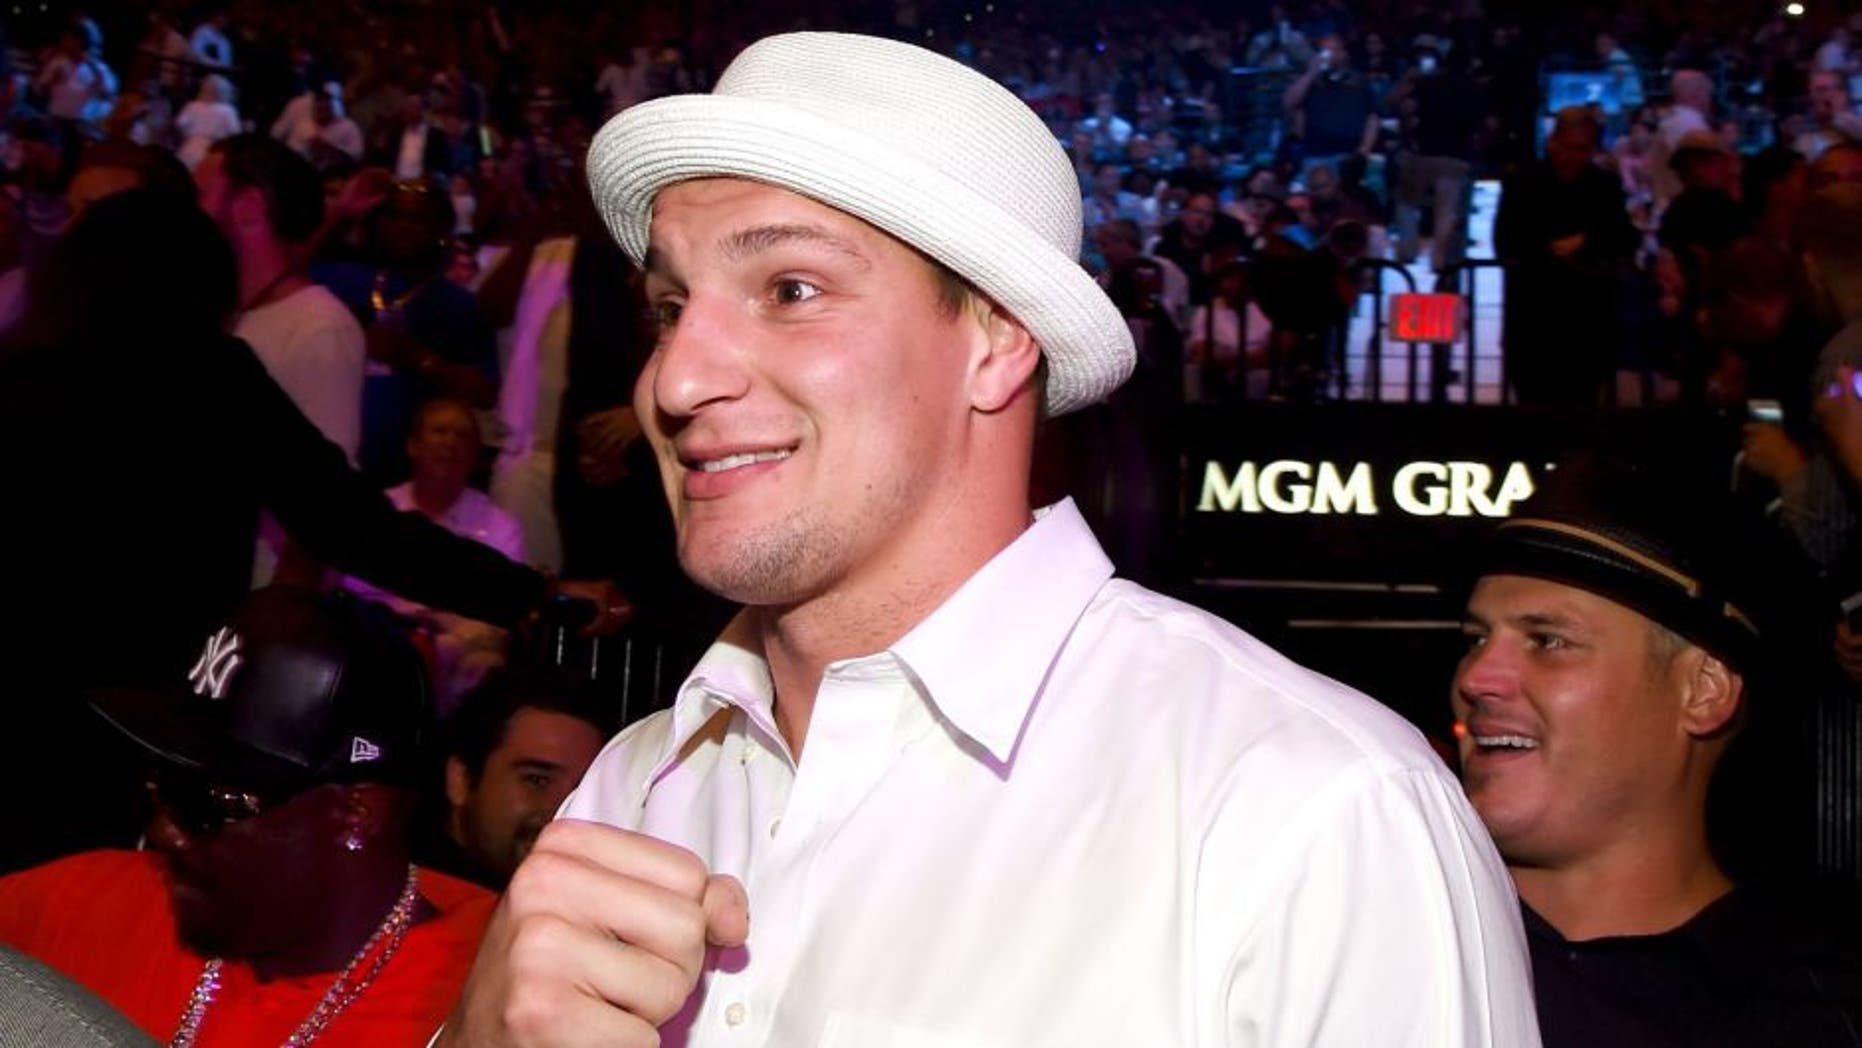 """LAS VEGAS, NV - MAY 02: NFL player Rob Gronkowski poses ringside At """"Mayweather VS Pacquiao"""" presented by SHOWTIME PPV And HBO PPV at MGM Grand Garden Arena on May 2, 2015 in Las Vegas, Nevada. (Photo by Ethan Miller/Getty Images for SHOWTIME)"""